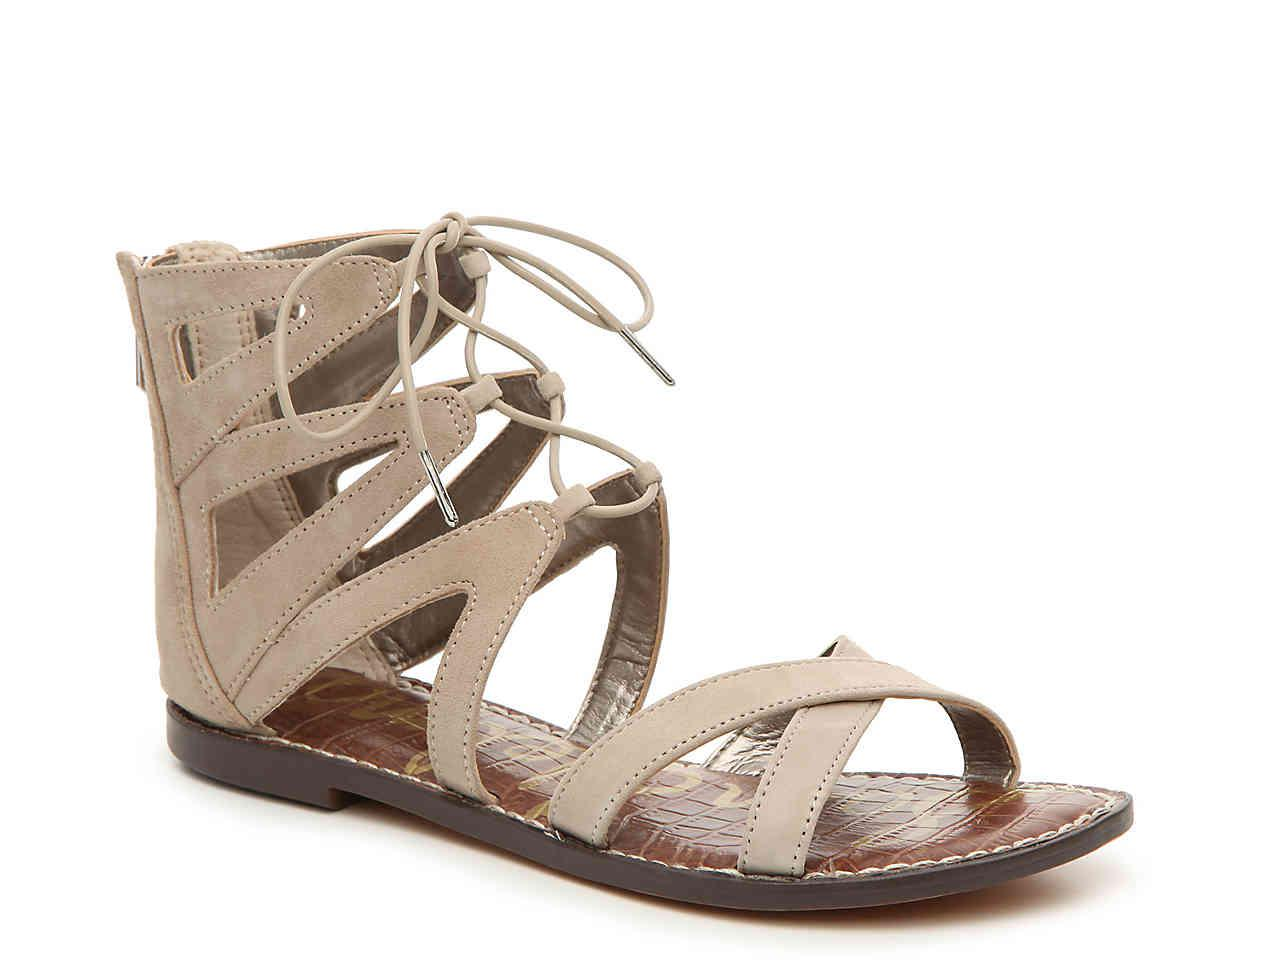 da8d402370a Gallery. Previously sold at  DSW · Women s Gladiator Sandals ...